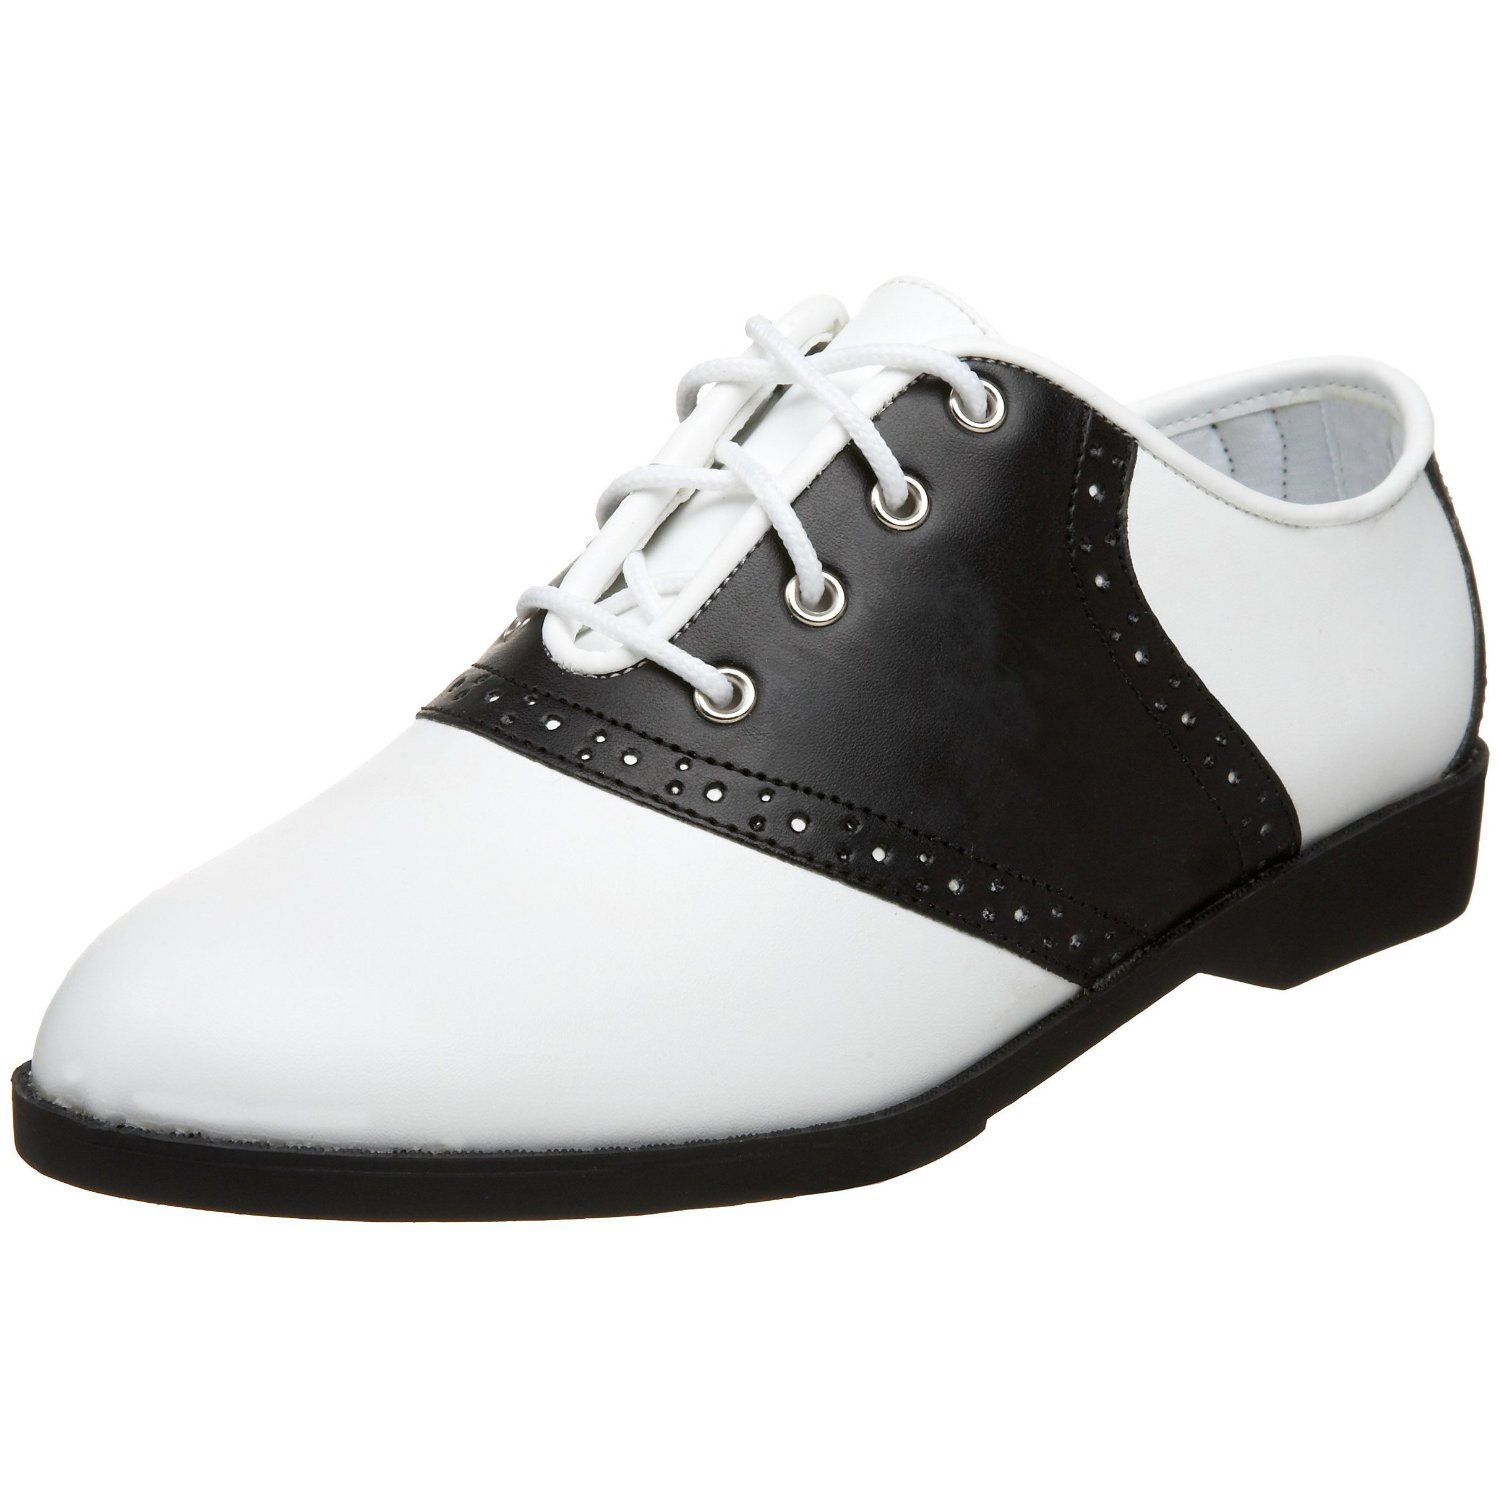 Saddle Shoes: Women's Vintage Black & White Shoes Ladies Saddle Shoes 1950s Costume Shoes 1950s Saddle Shoes White/Black.88 AT vintagedancer.com